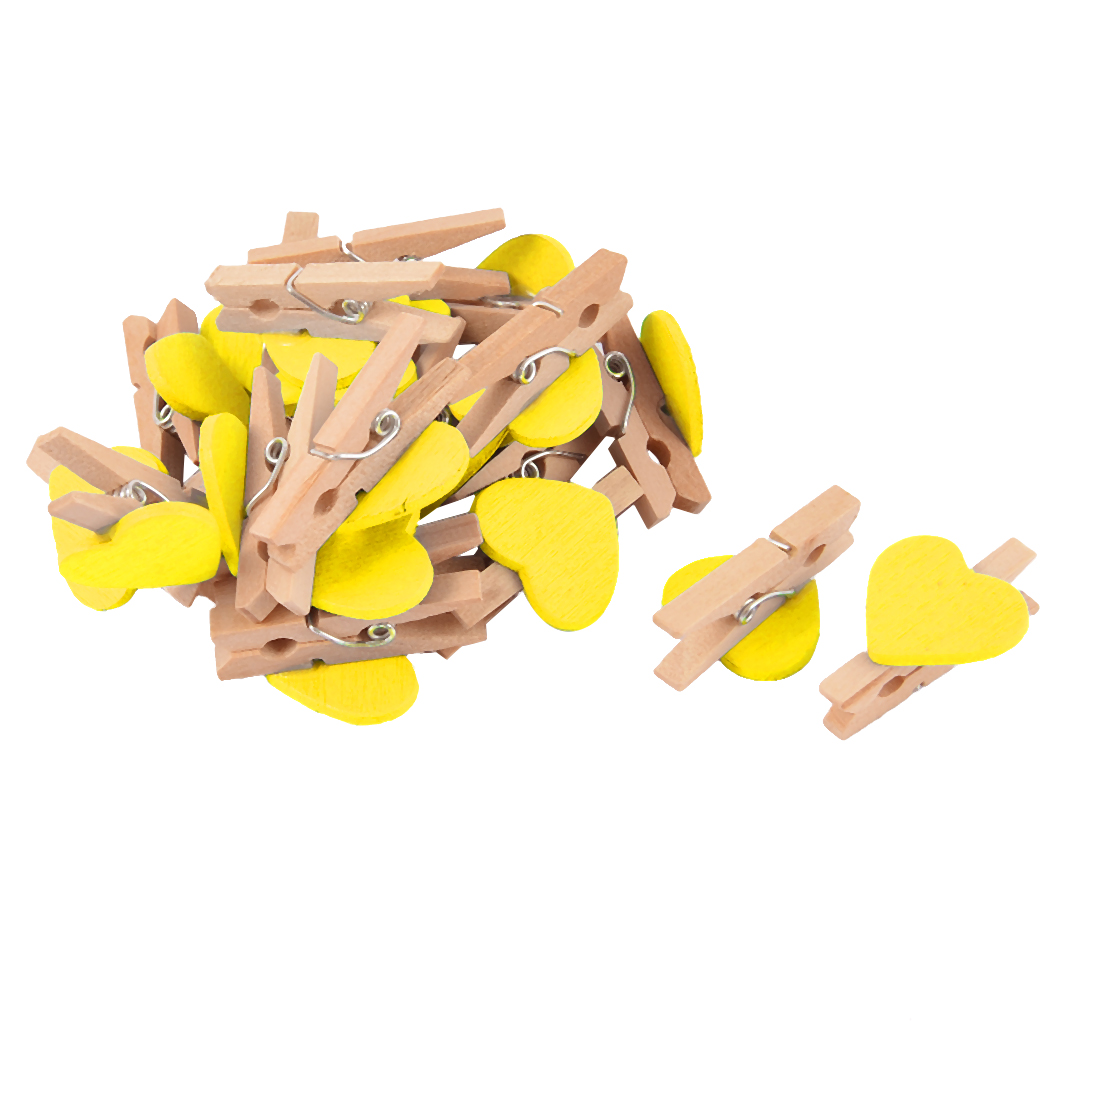 Party Card Photo Decoration Love Heart Mini Wooden Clip Pegs Yellow 20pcs